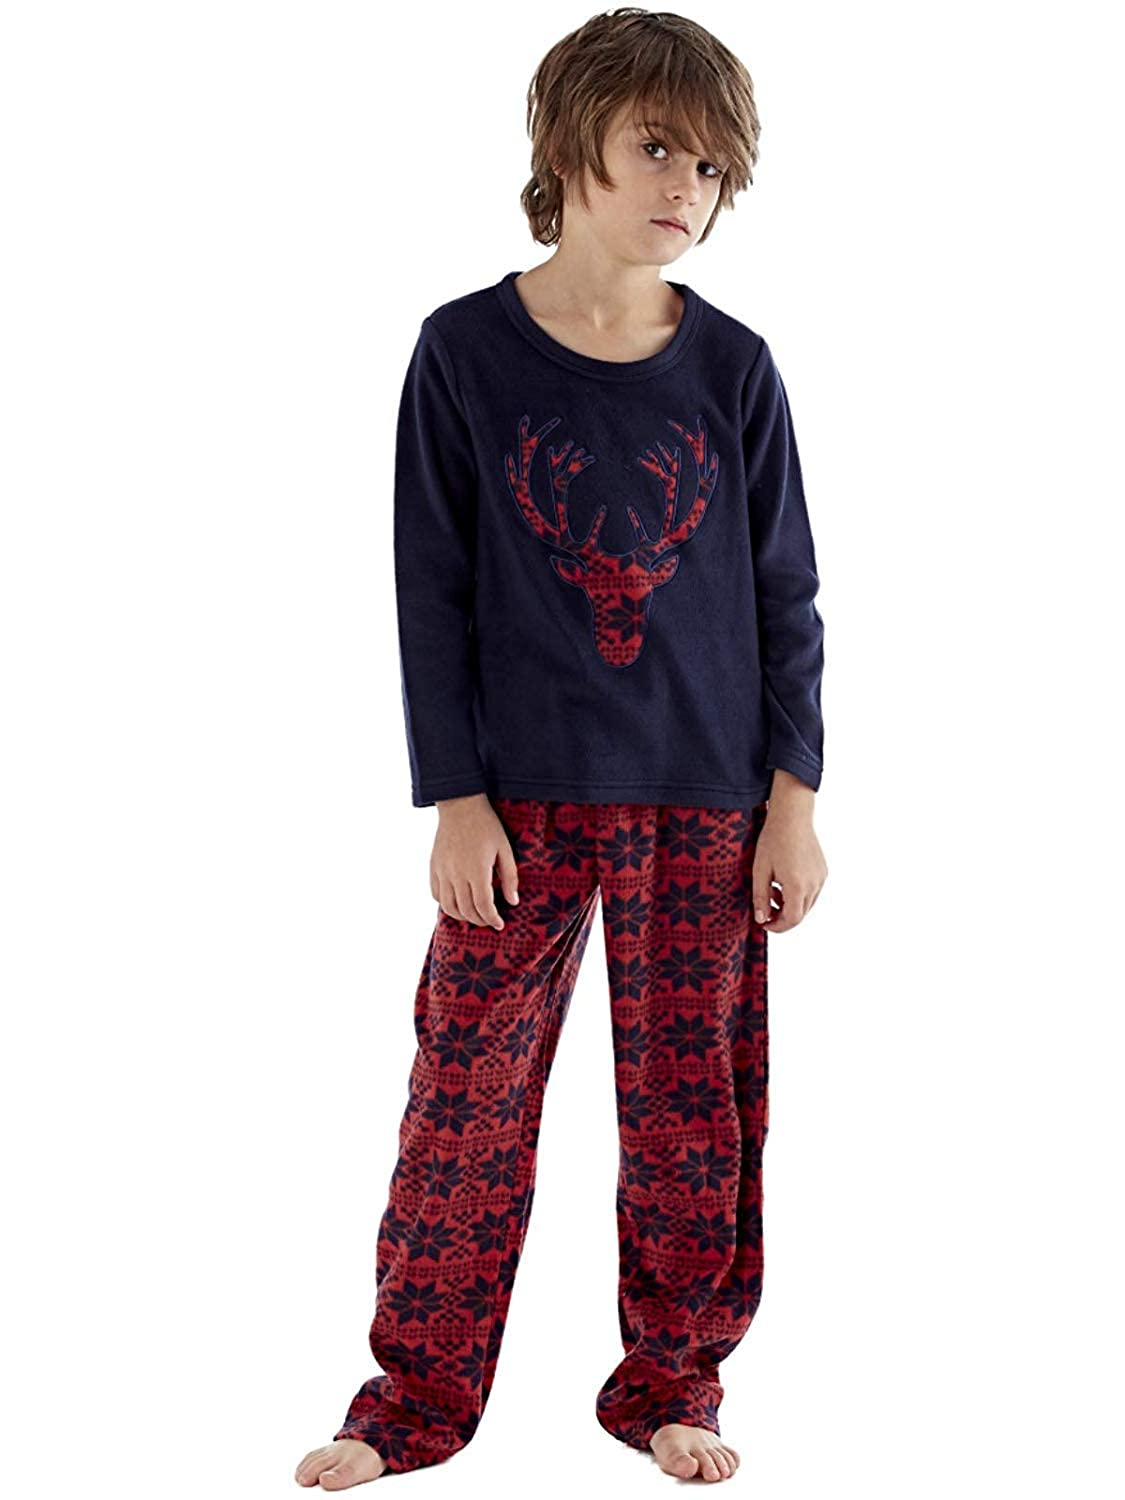 Harvey James para Hombre Pantal/ón de Pijama